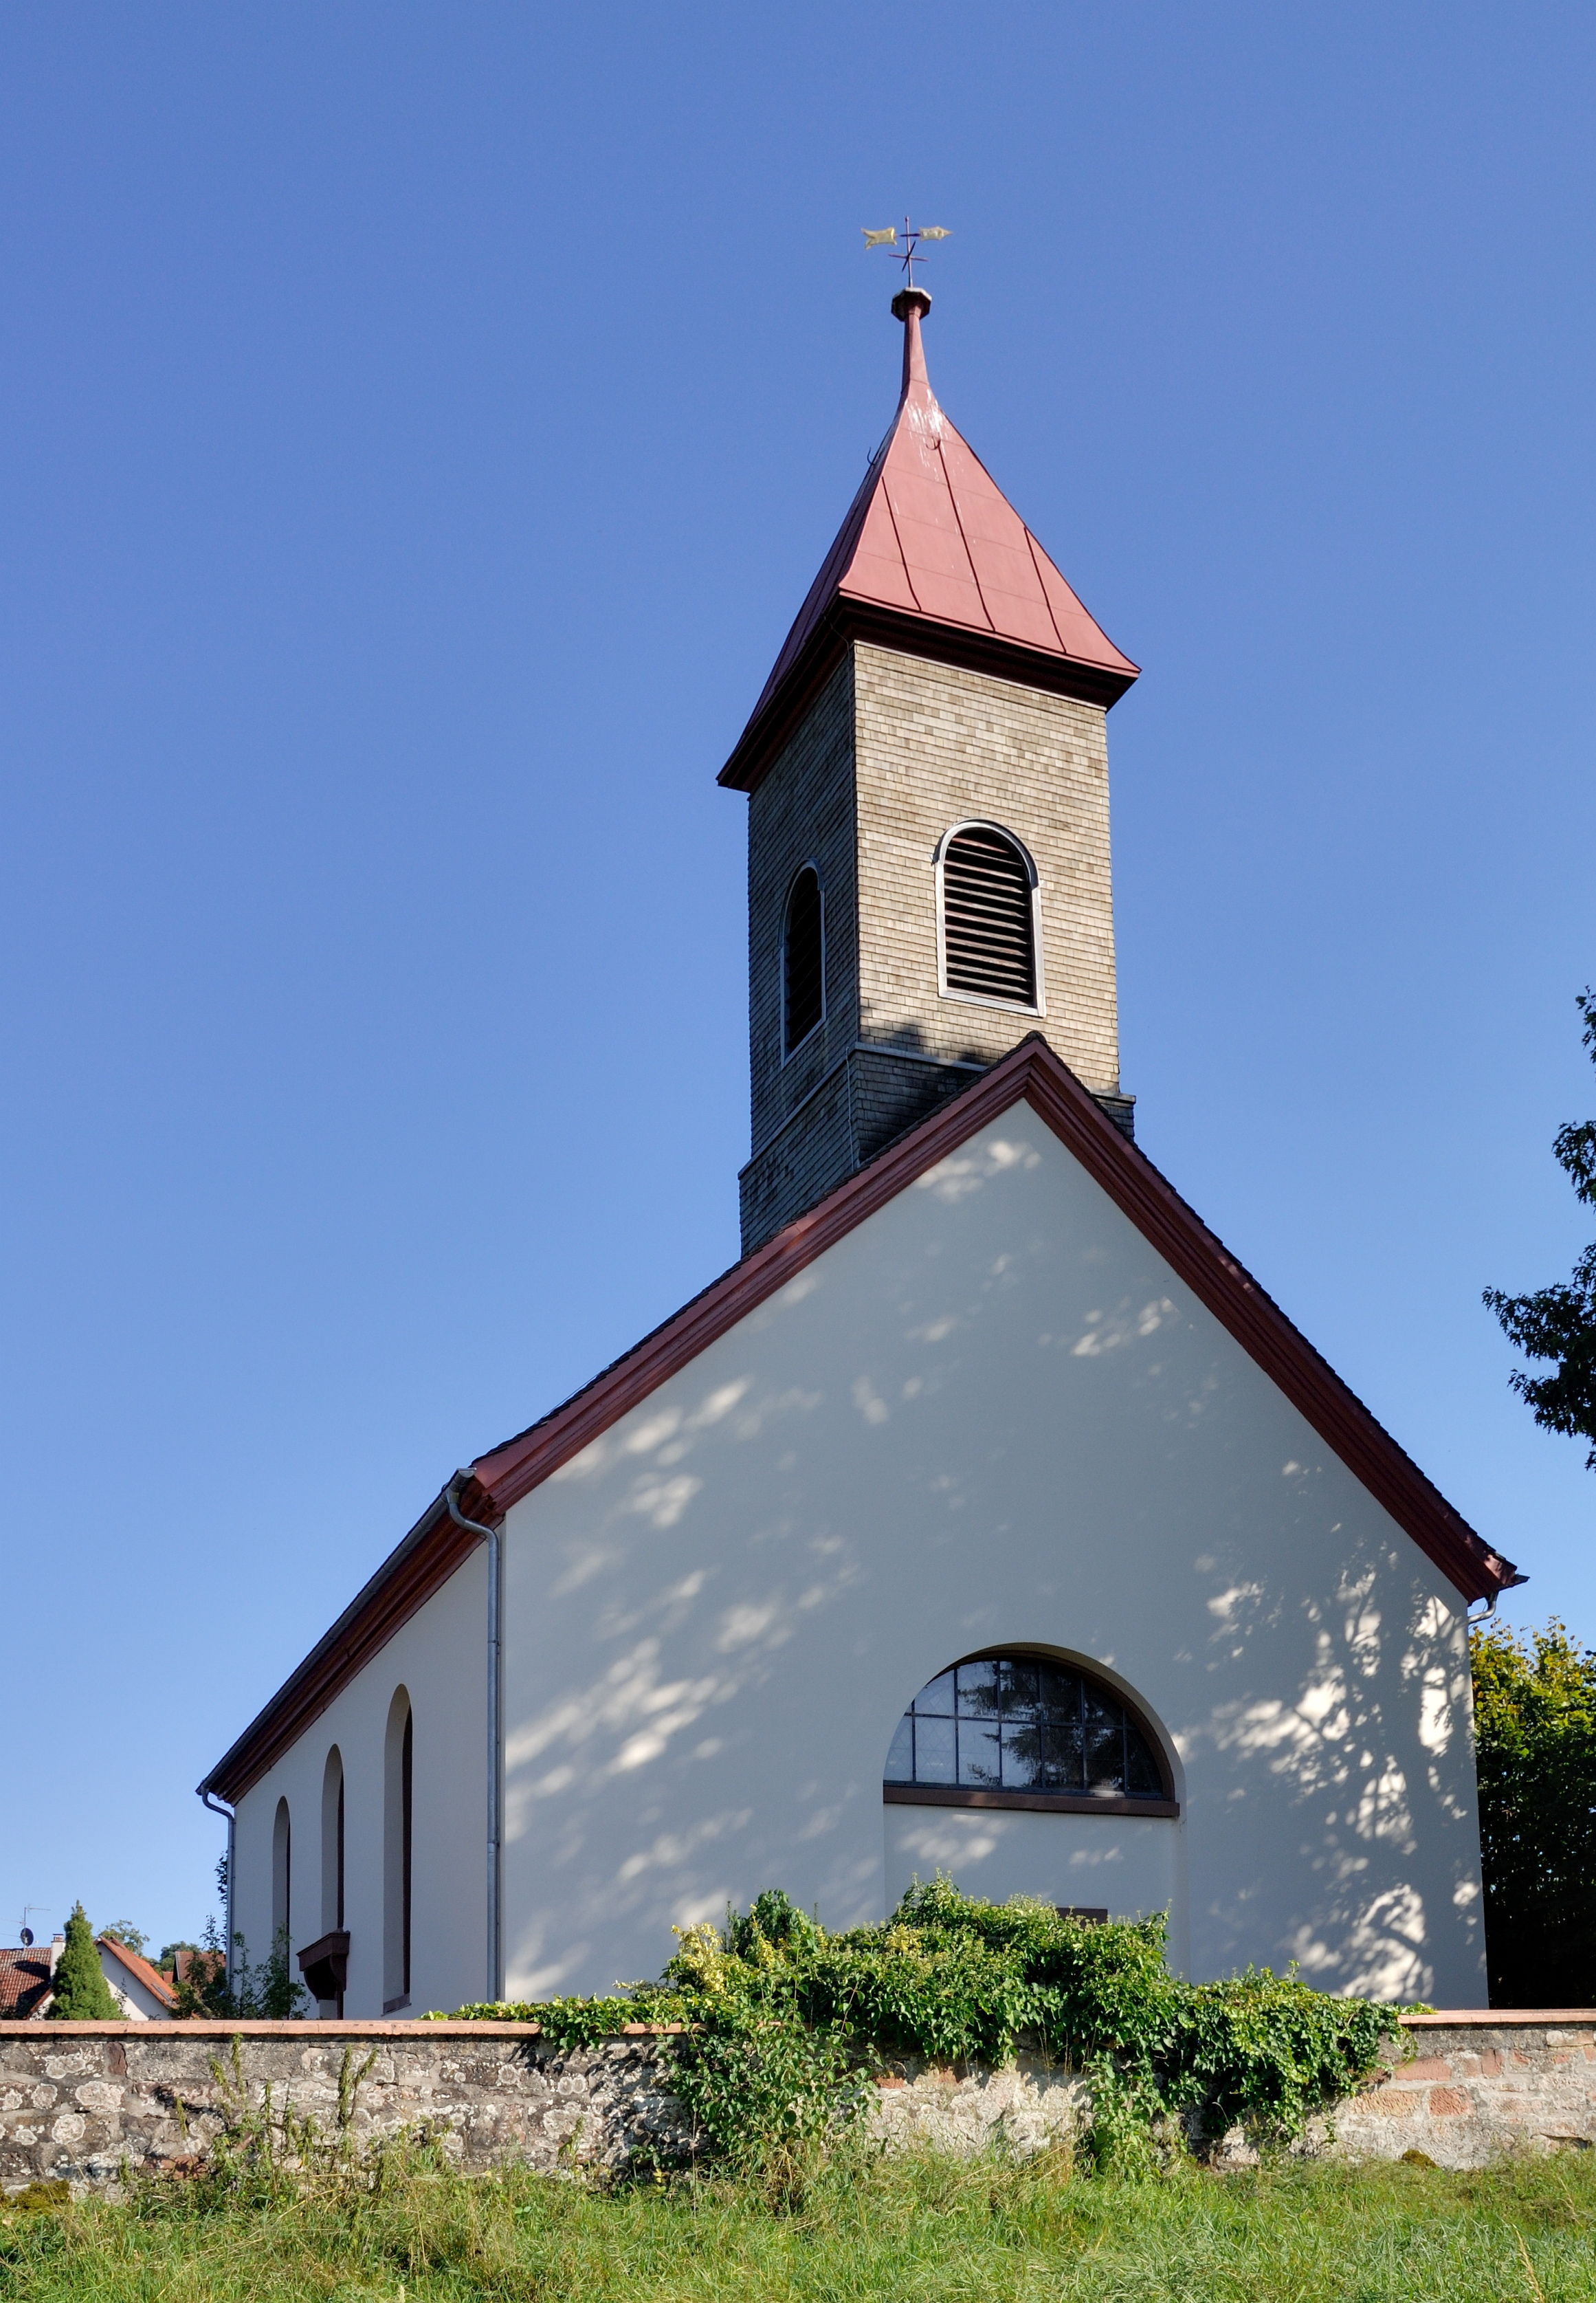 https://upload.wikimedia.org/wikipedia/commons/4/45/Schopfheim-Eichen_-_Evangelische_Kirche2.jpg